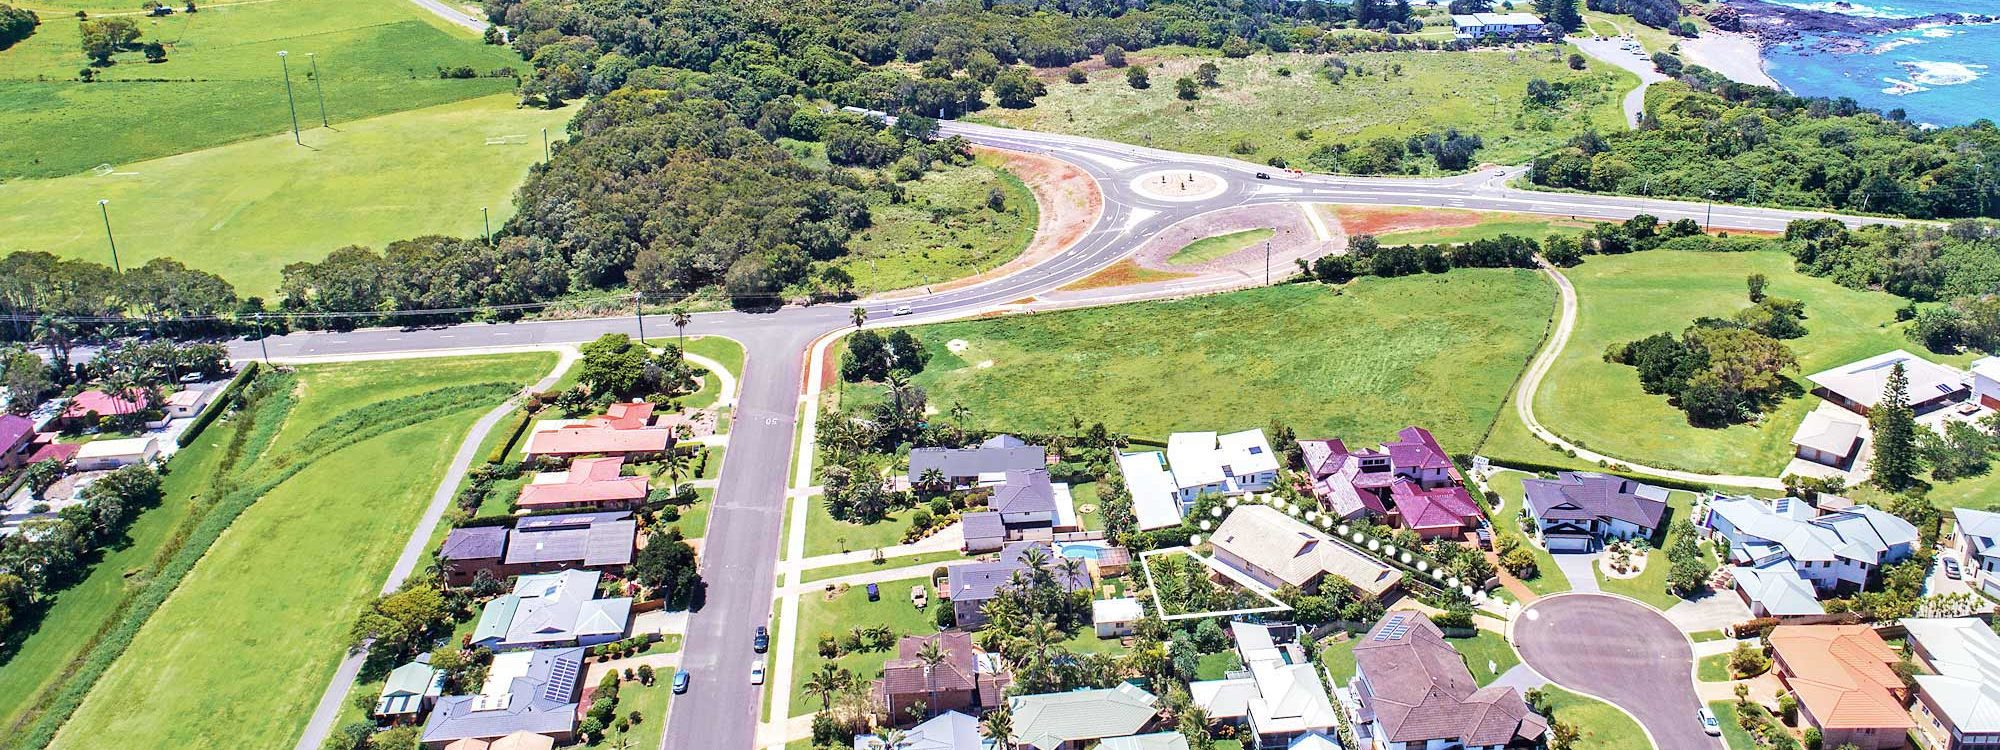 Boulders Retreat - Lennox Head - Aerial Boulders House Location to Road